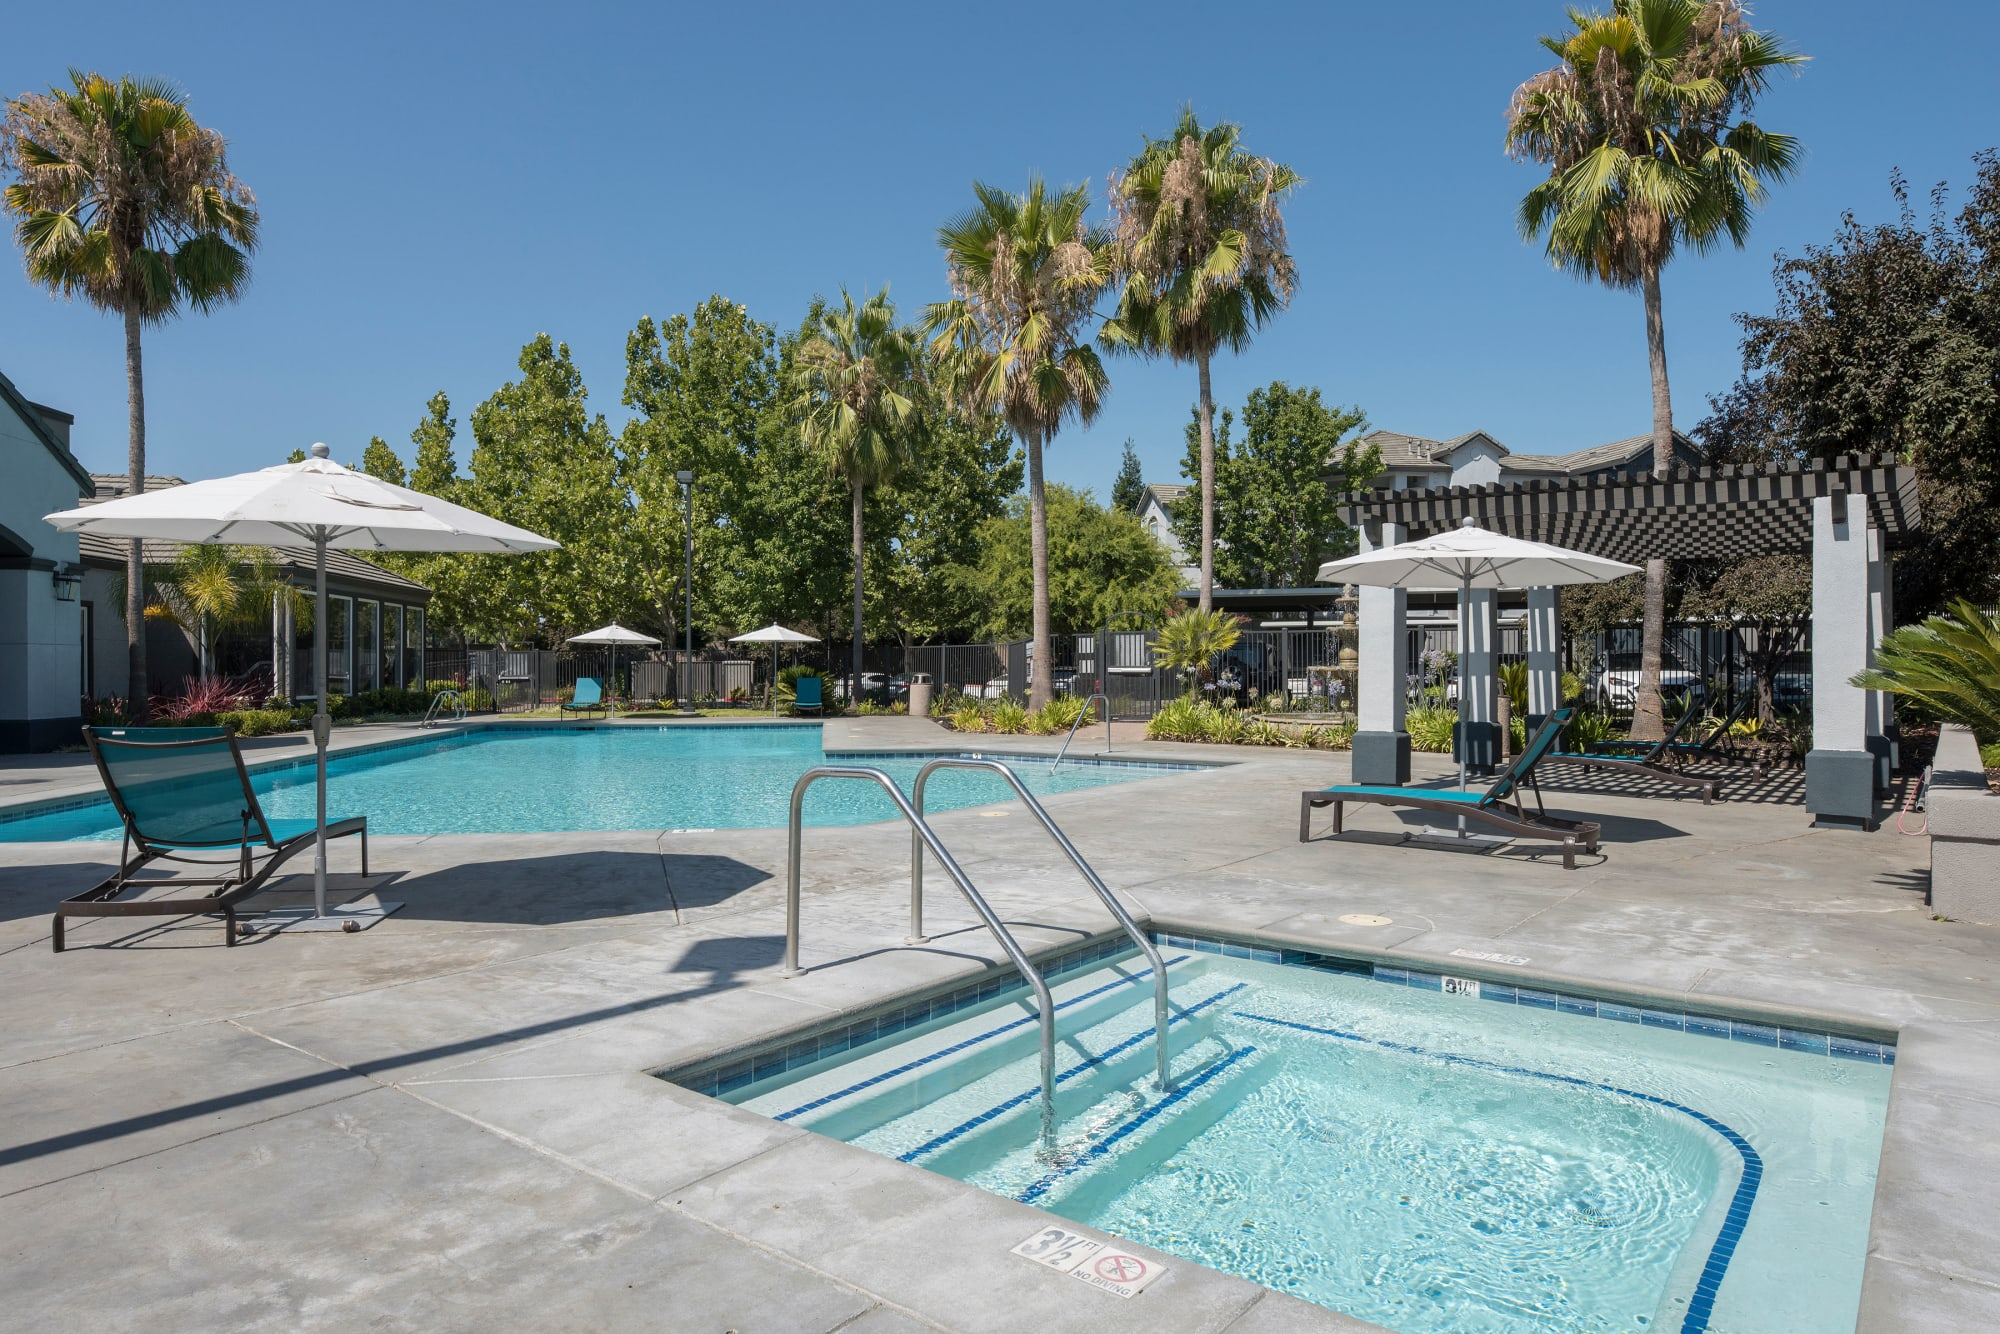 Hot tub and swimming pool at Avion Apartments in Rancho Cordova, California